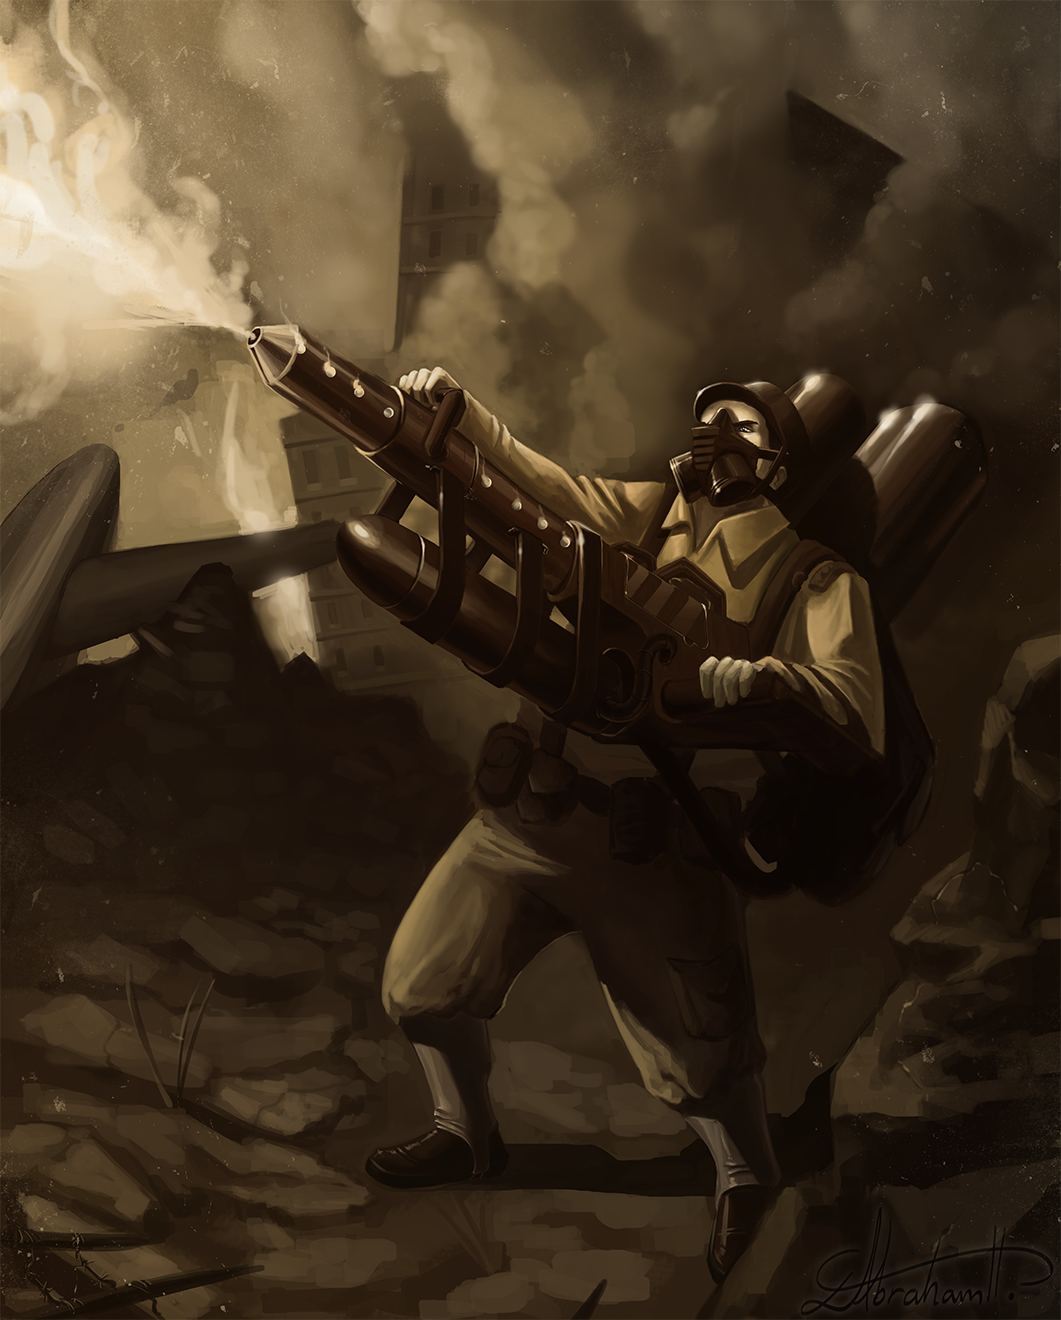 402 dieselpunk heavy weapons trooper1 by abrahamdavid on